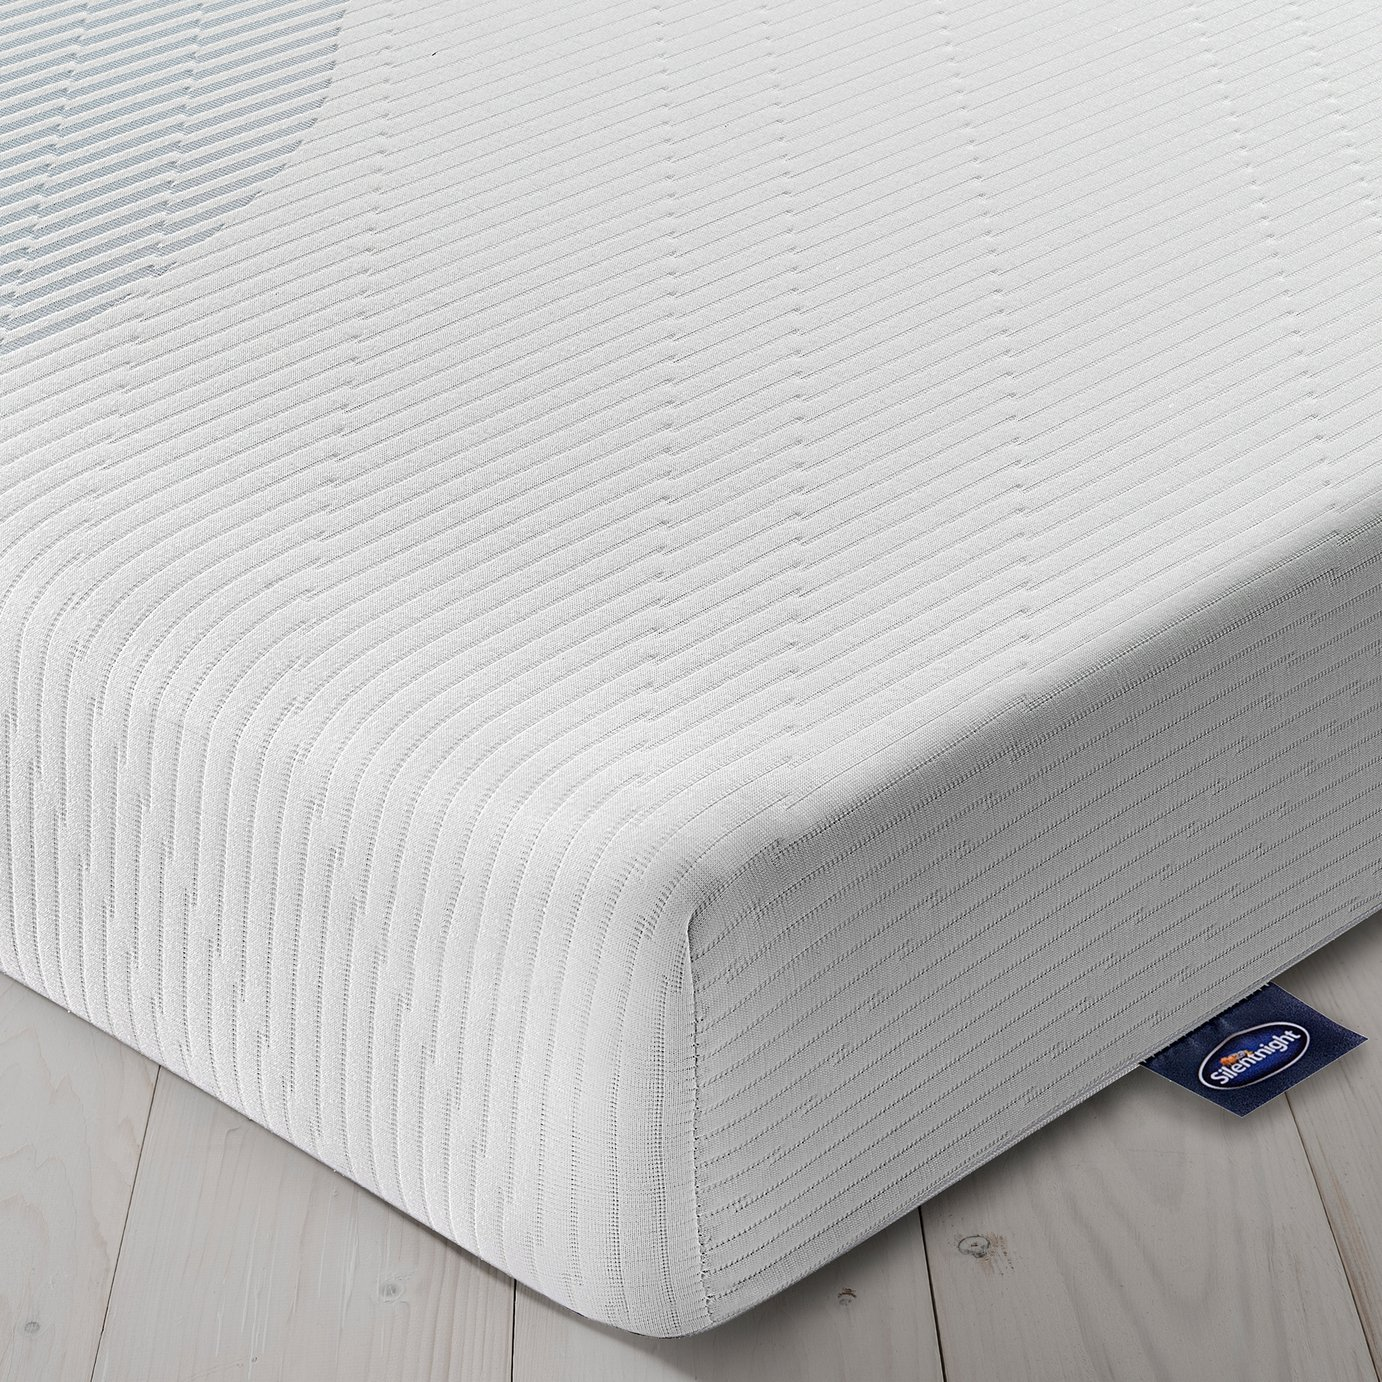 Silentnight Memory Foam Rolled Double Mattress